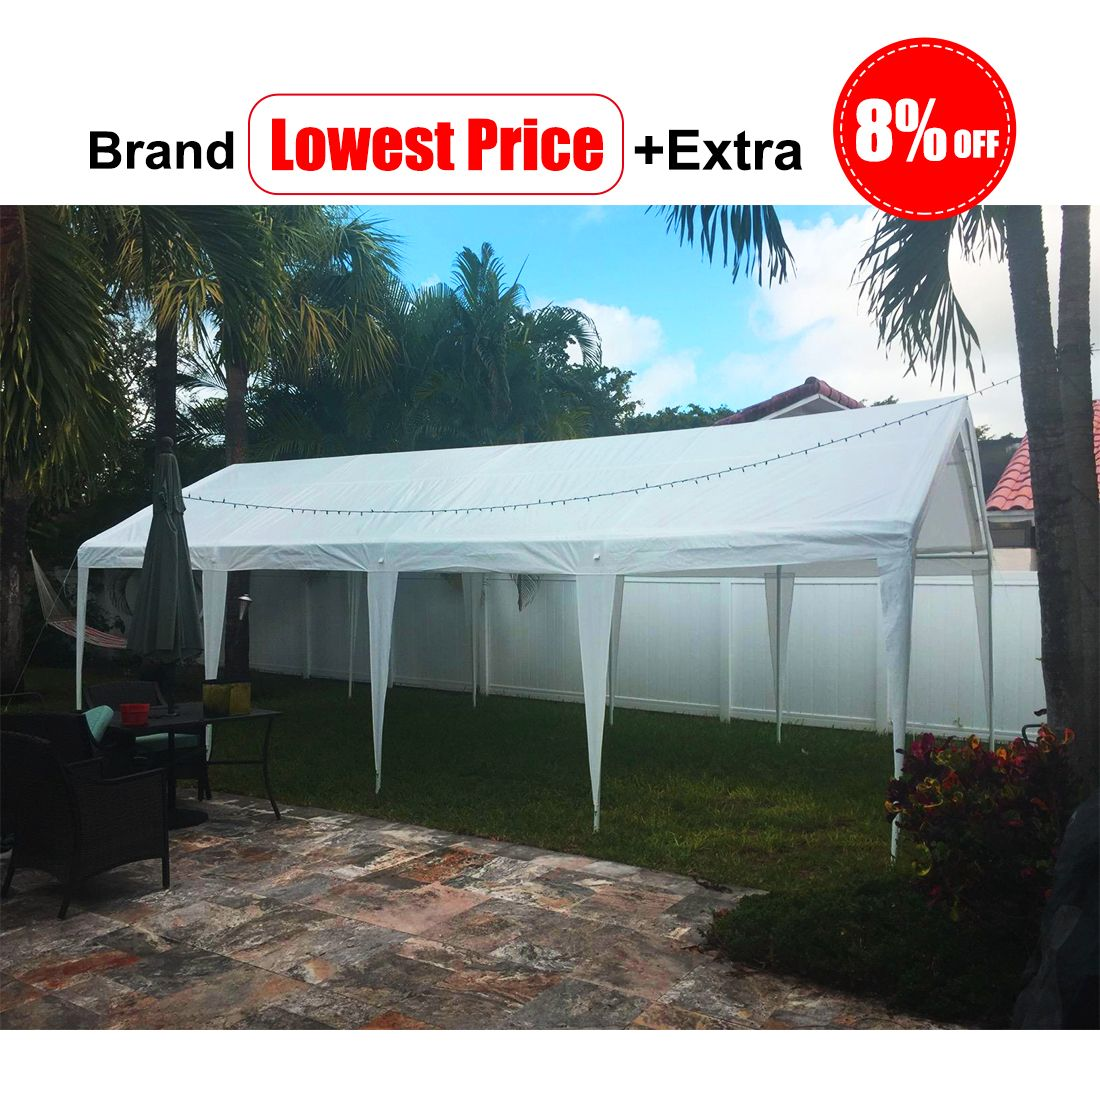 Brand Lowest Price Extra 8 Off Free Accessories Free Delivery Code Jwswkbl5 Outdoor Gazebos Canopy Tent Party Tent